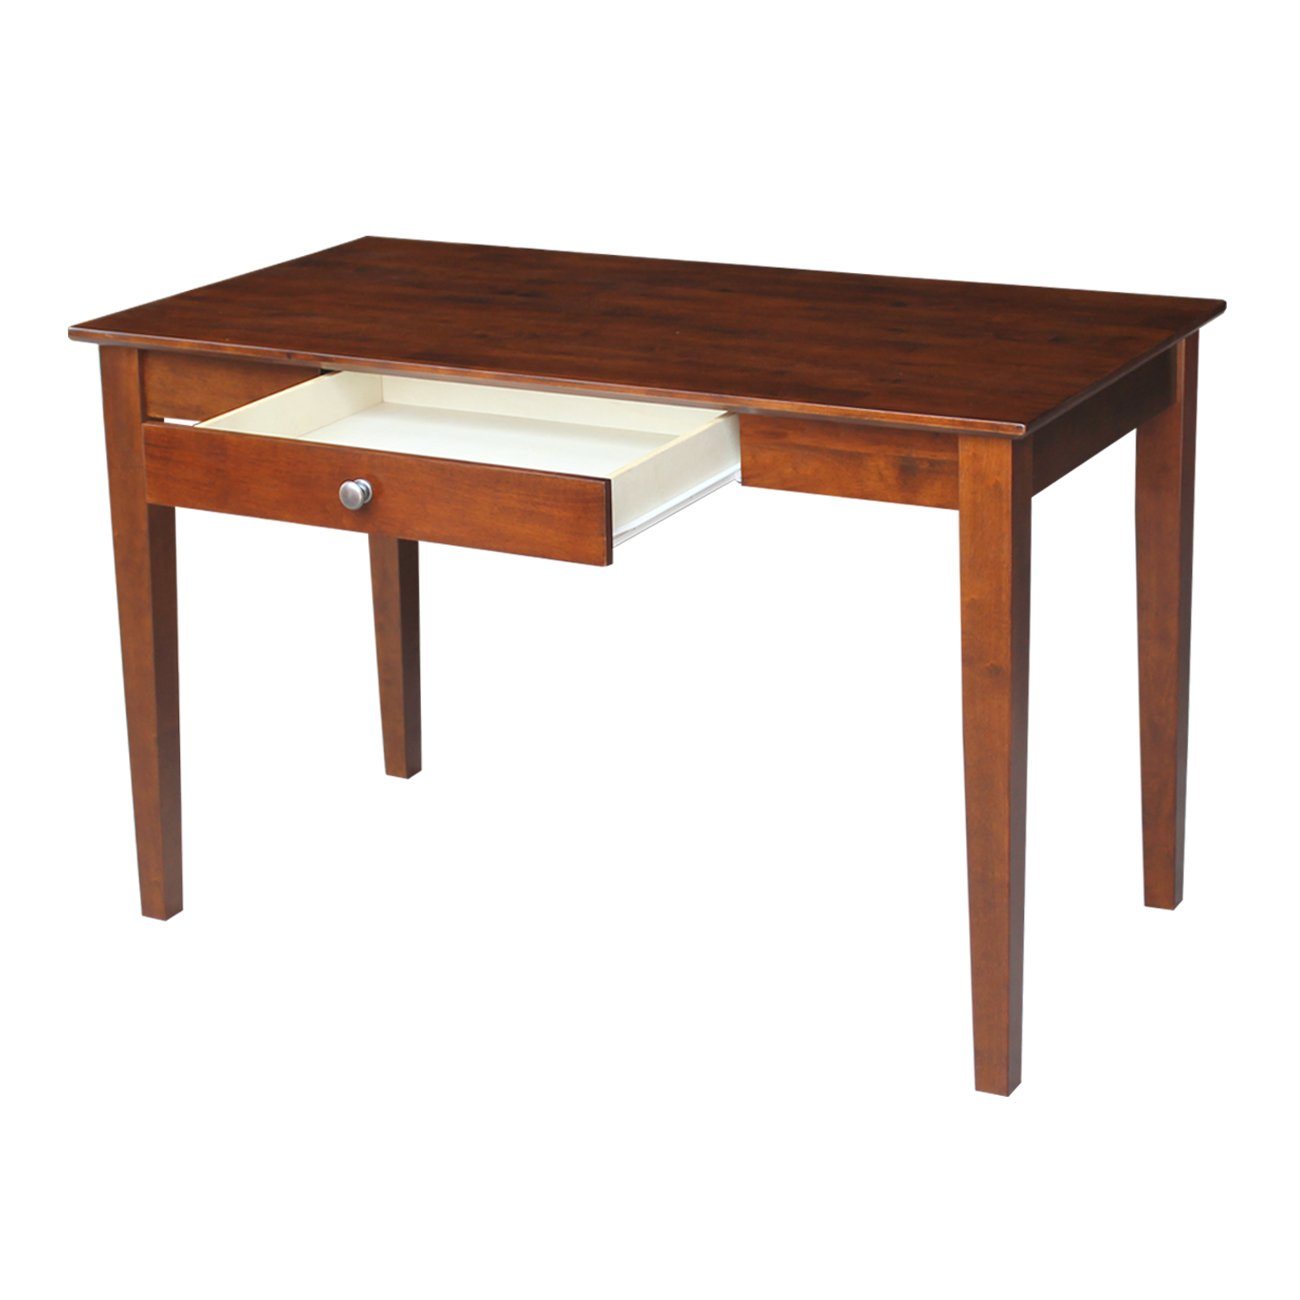 International Concepts Basic Desk with Drawer, Espresso Finish